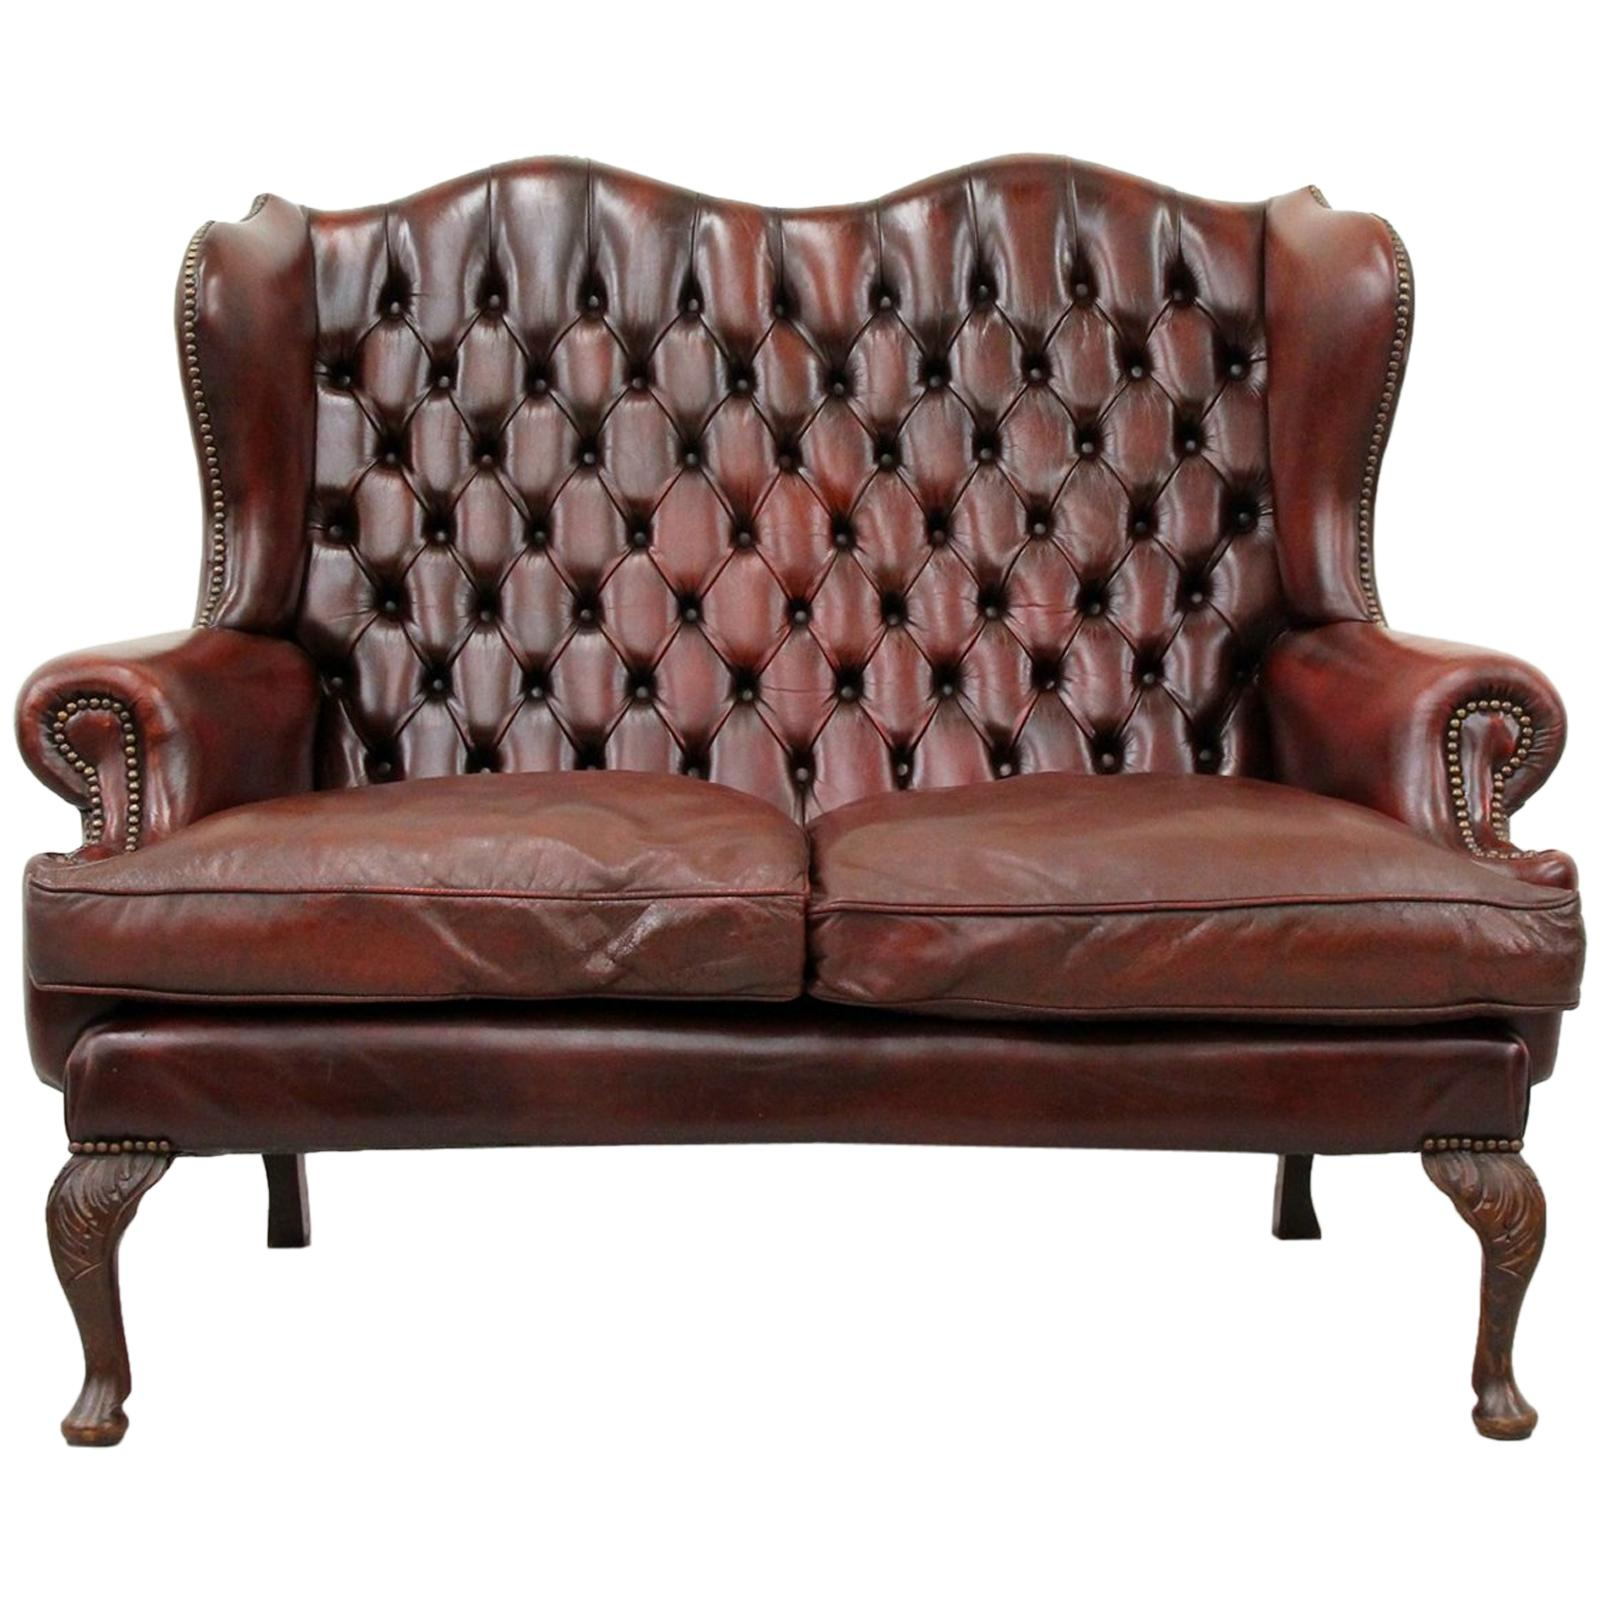 Vintage Couch Chesterfield Chippendale Sofa Leather Antique Vintage Couch English